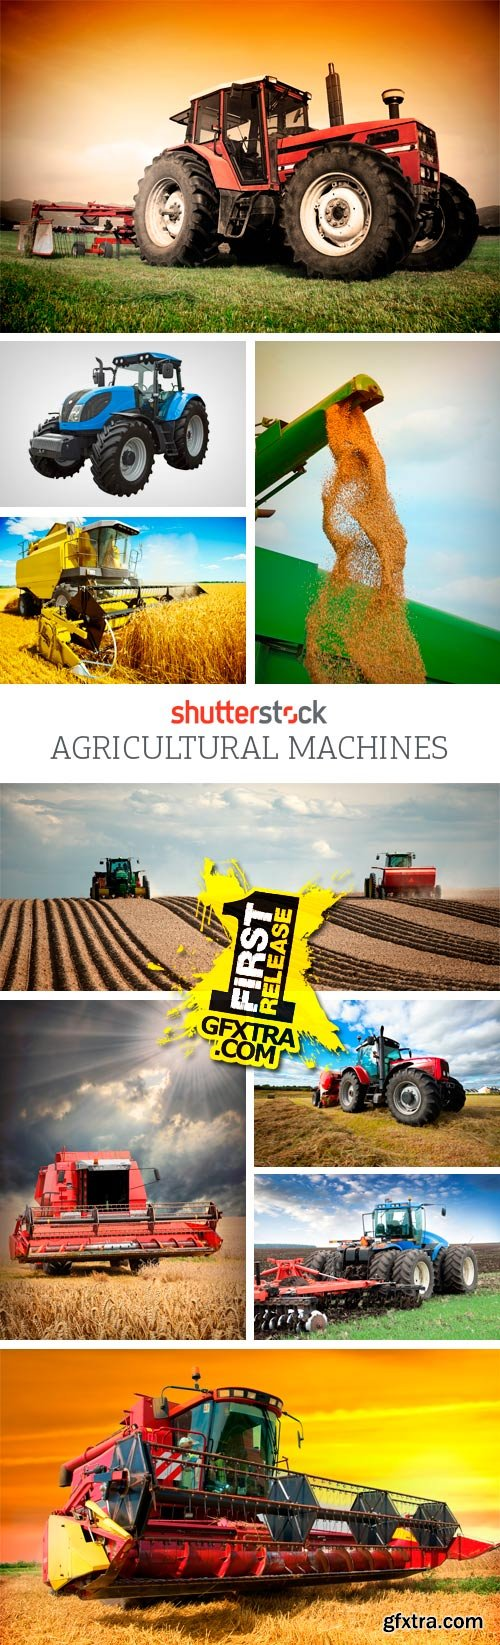 Amazing SS - Agricultural Machines, 25xJPGs